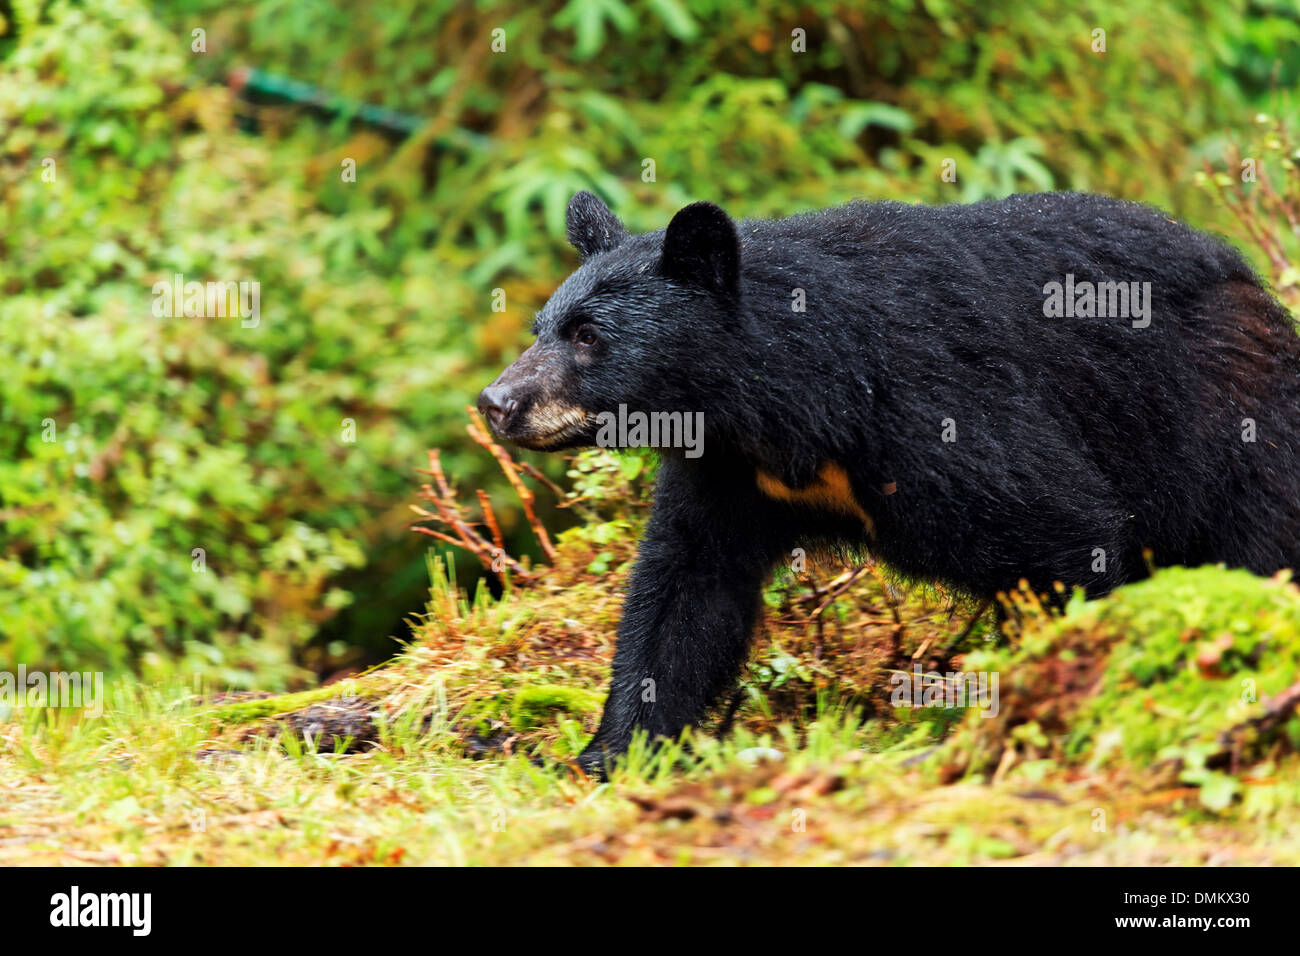 Black bear walking through forest, Anan Wildlife Observatory, Tongass National Forest, Southeast, Alaska - Stock Image